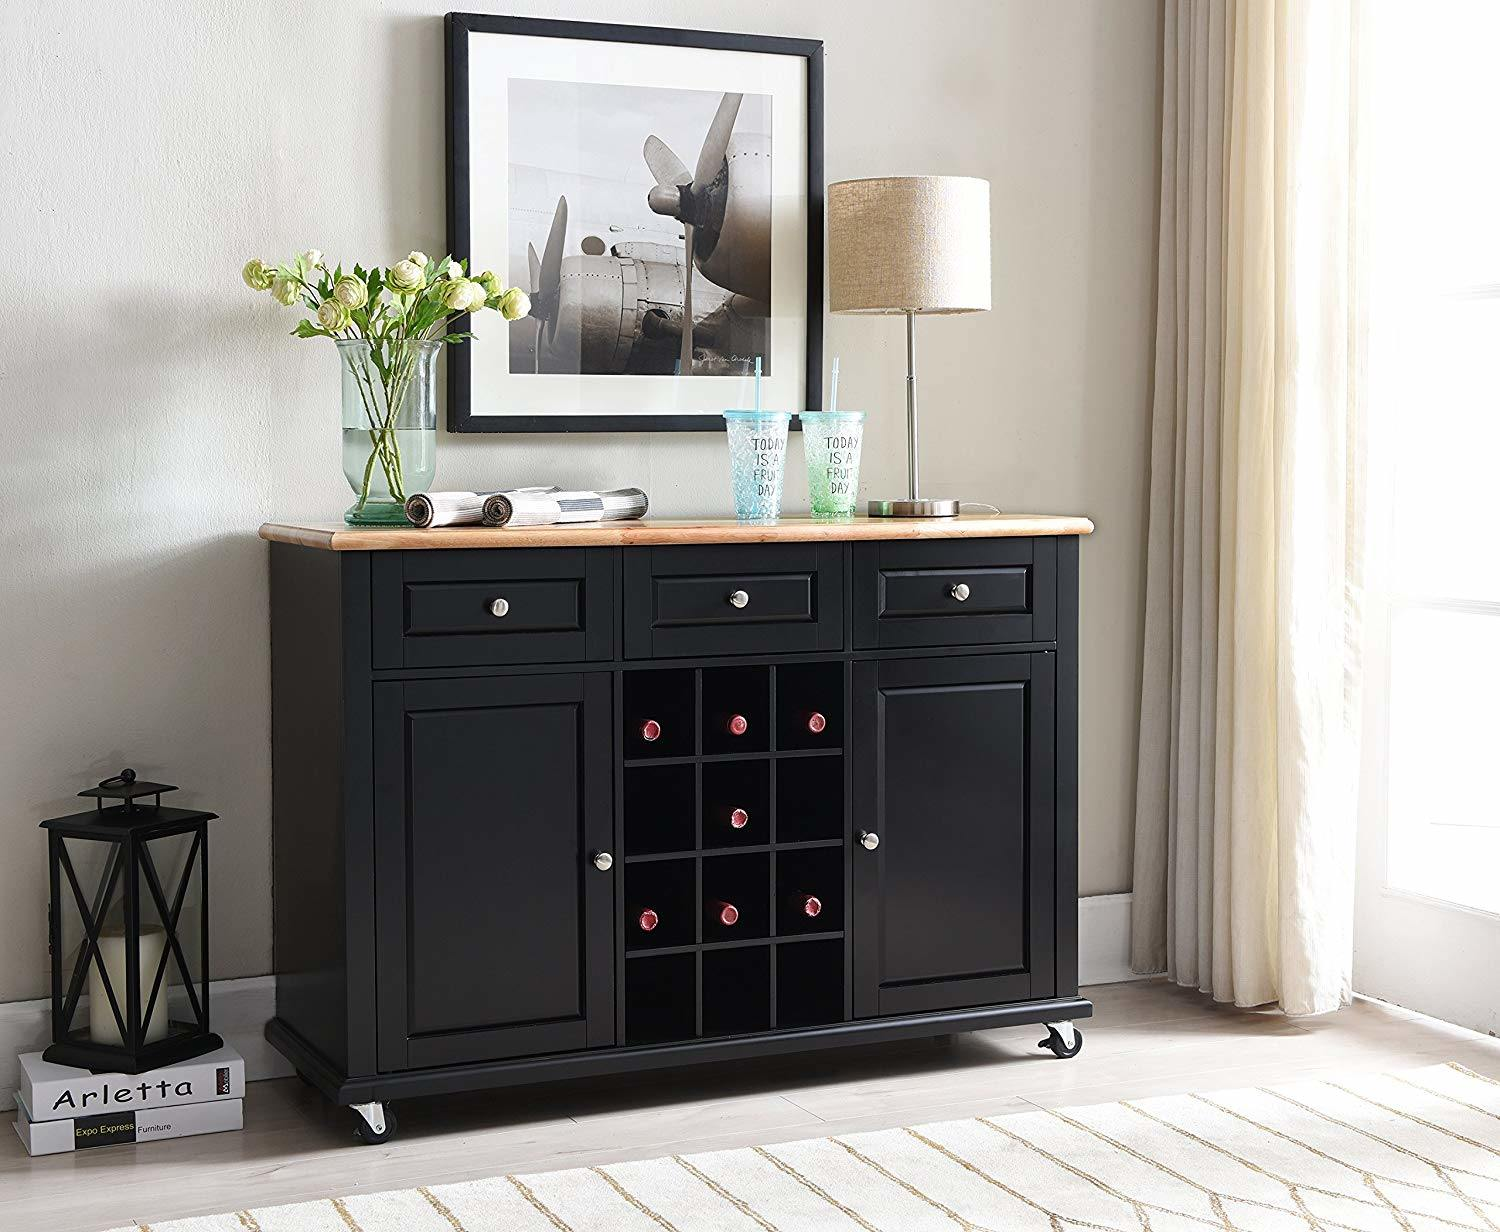 Chinese Furniture Wooden Buffet Wooden Kitchen Cabinet Easy Assembly Black Wine Rack Buffet Sideboard With Storage China Modern Kitchen Cabinet Antique Reproduction Furniture